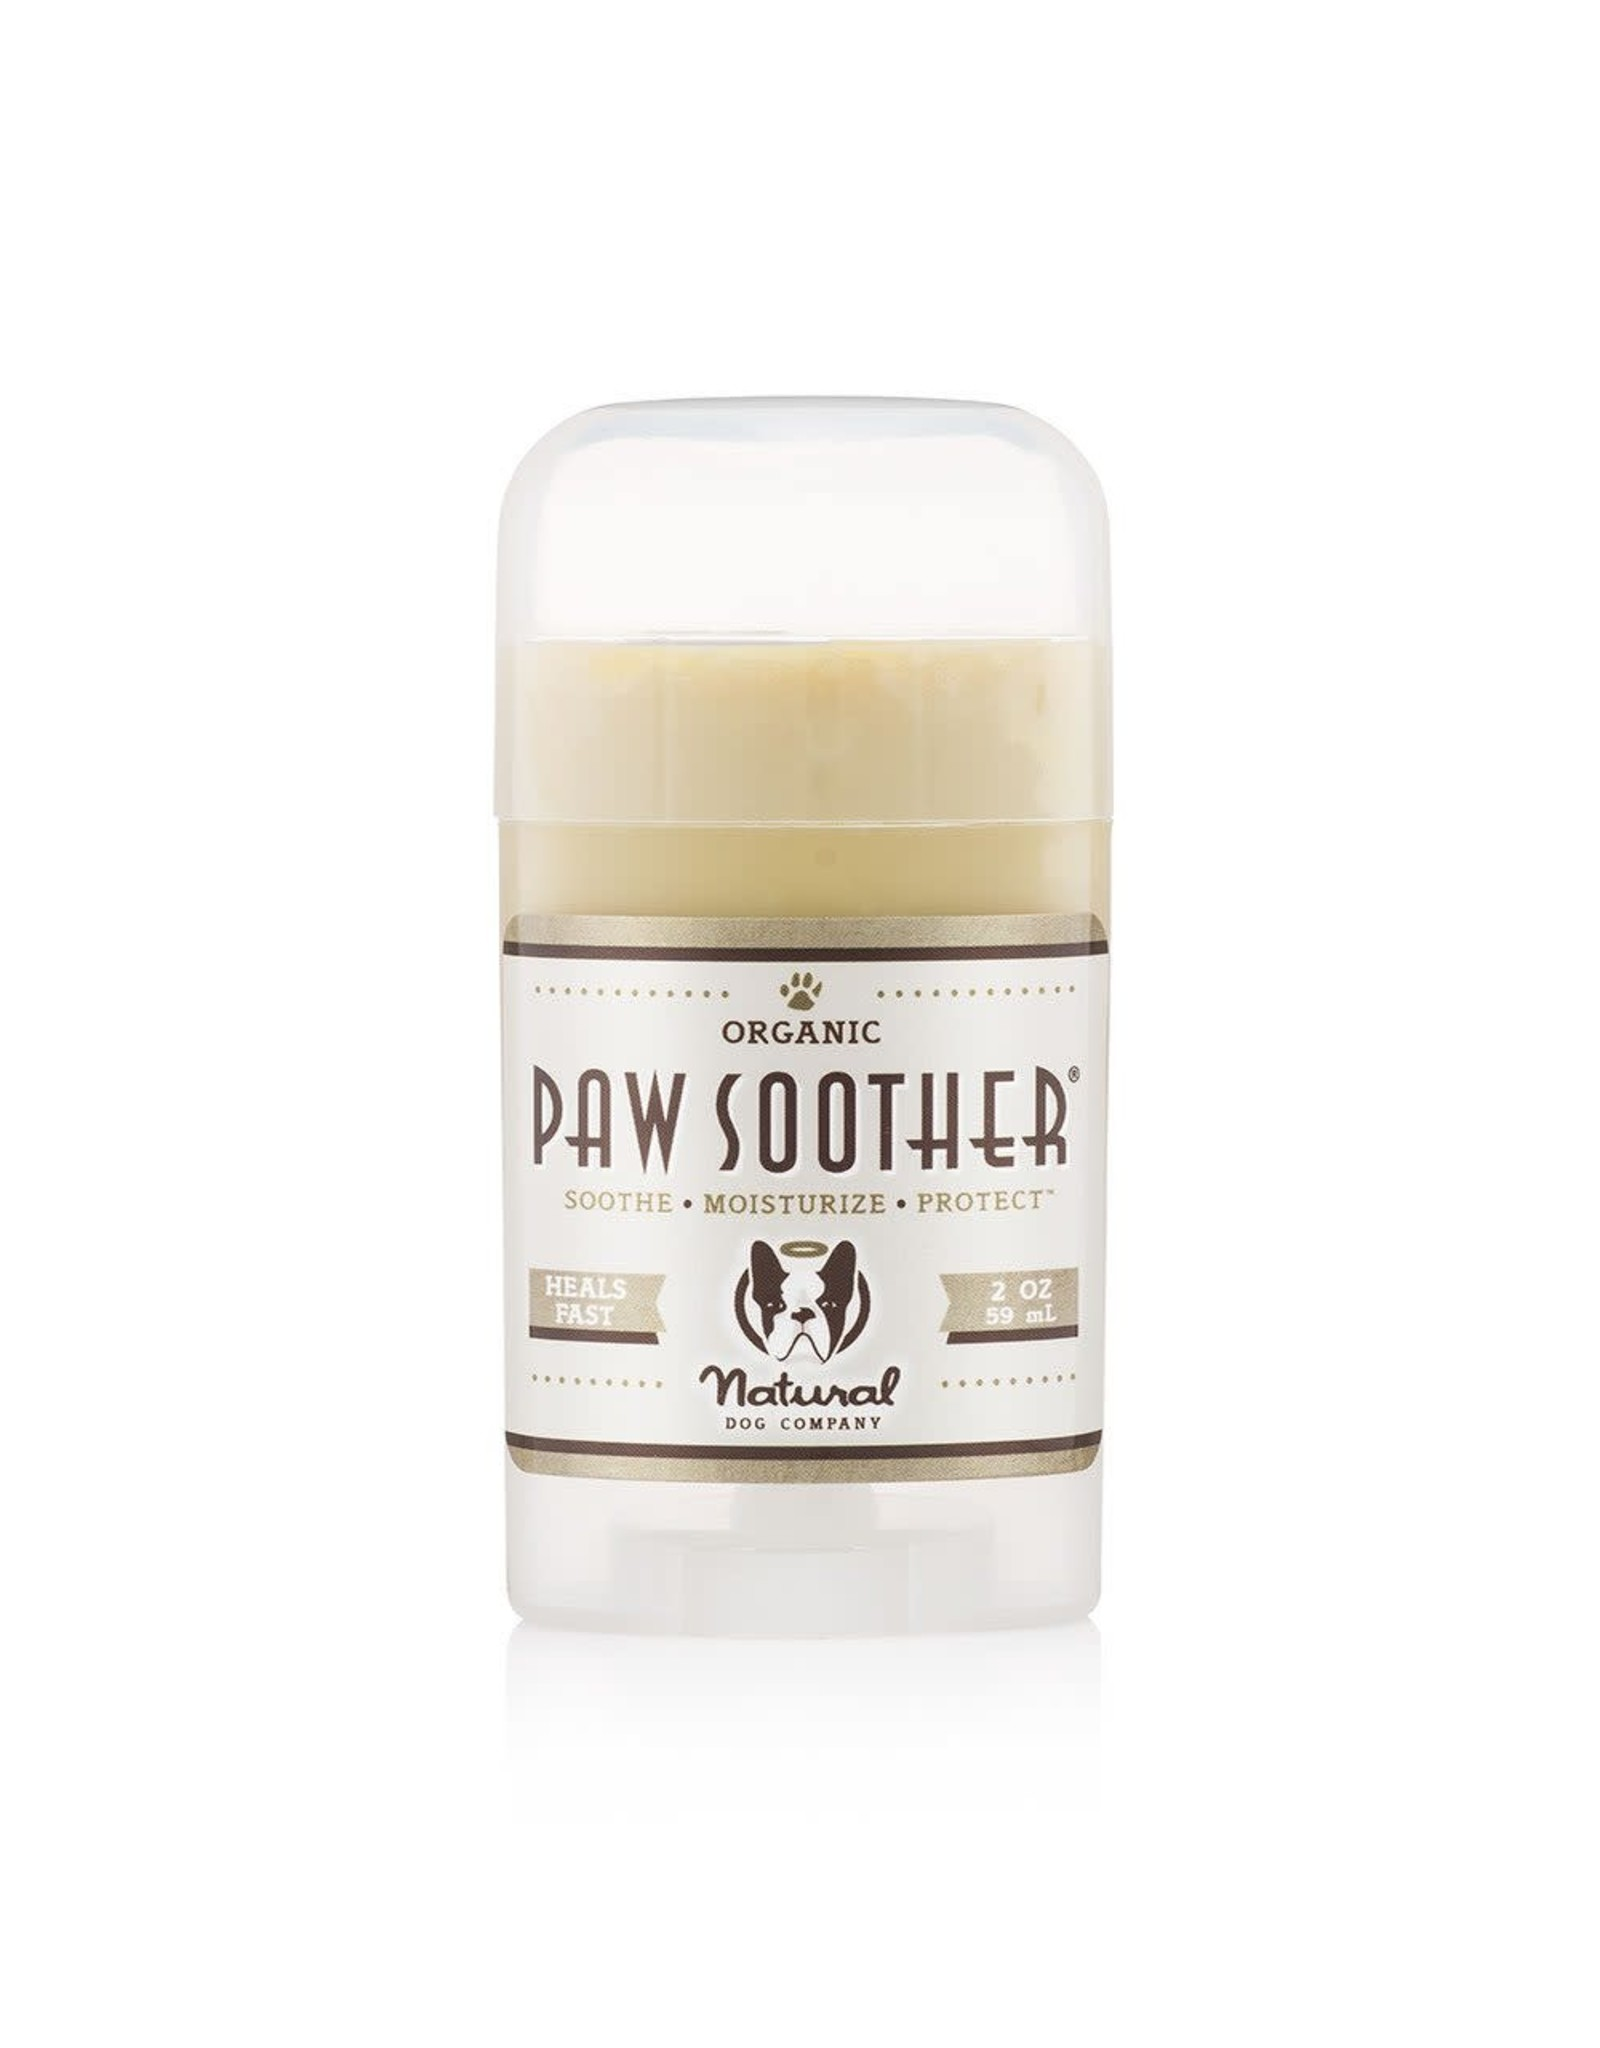 Organic Paw Soother Balm